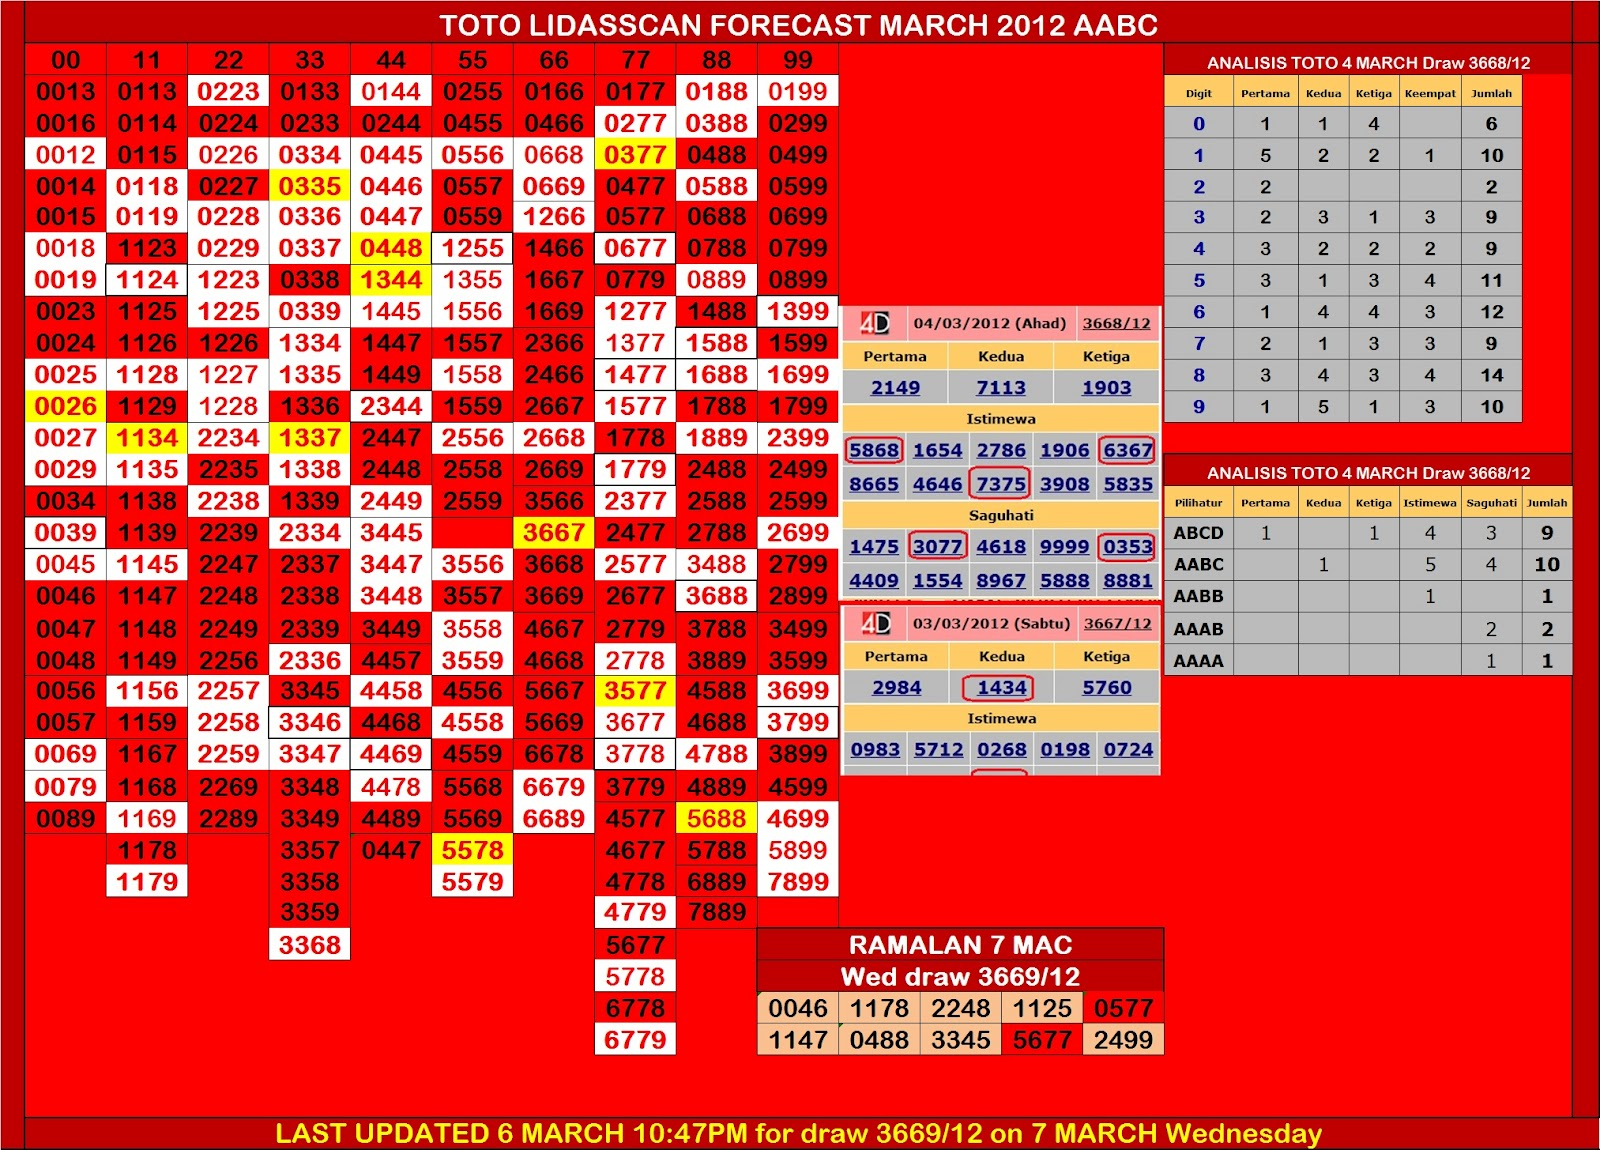 FORECAST LIDASSCAN: TOTO & MAGNUM 7 March